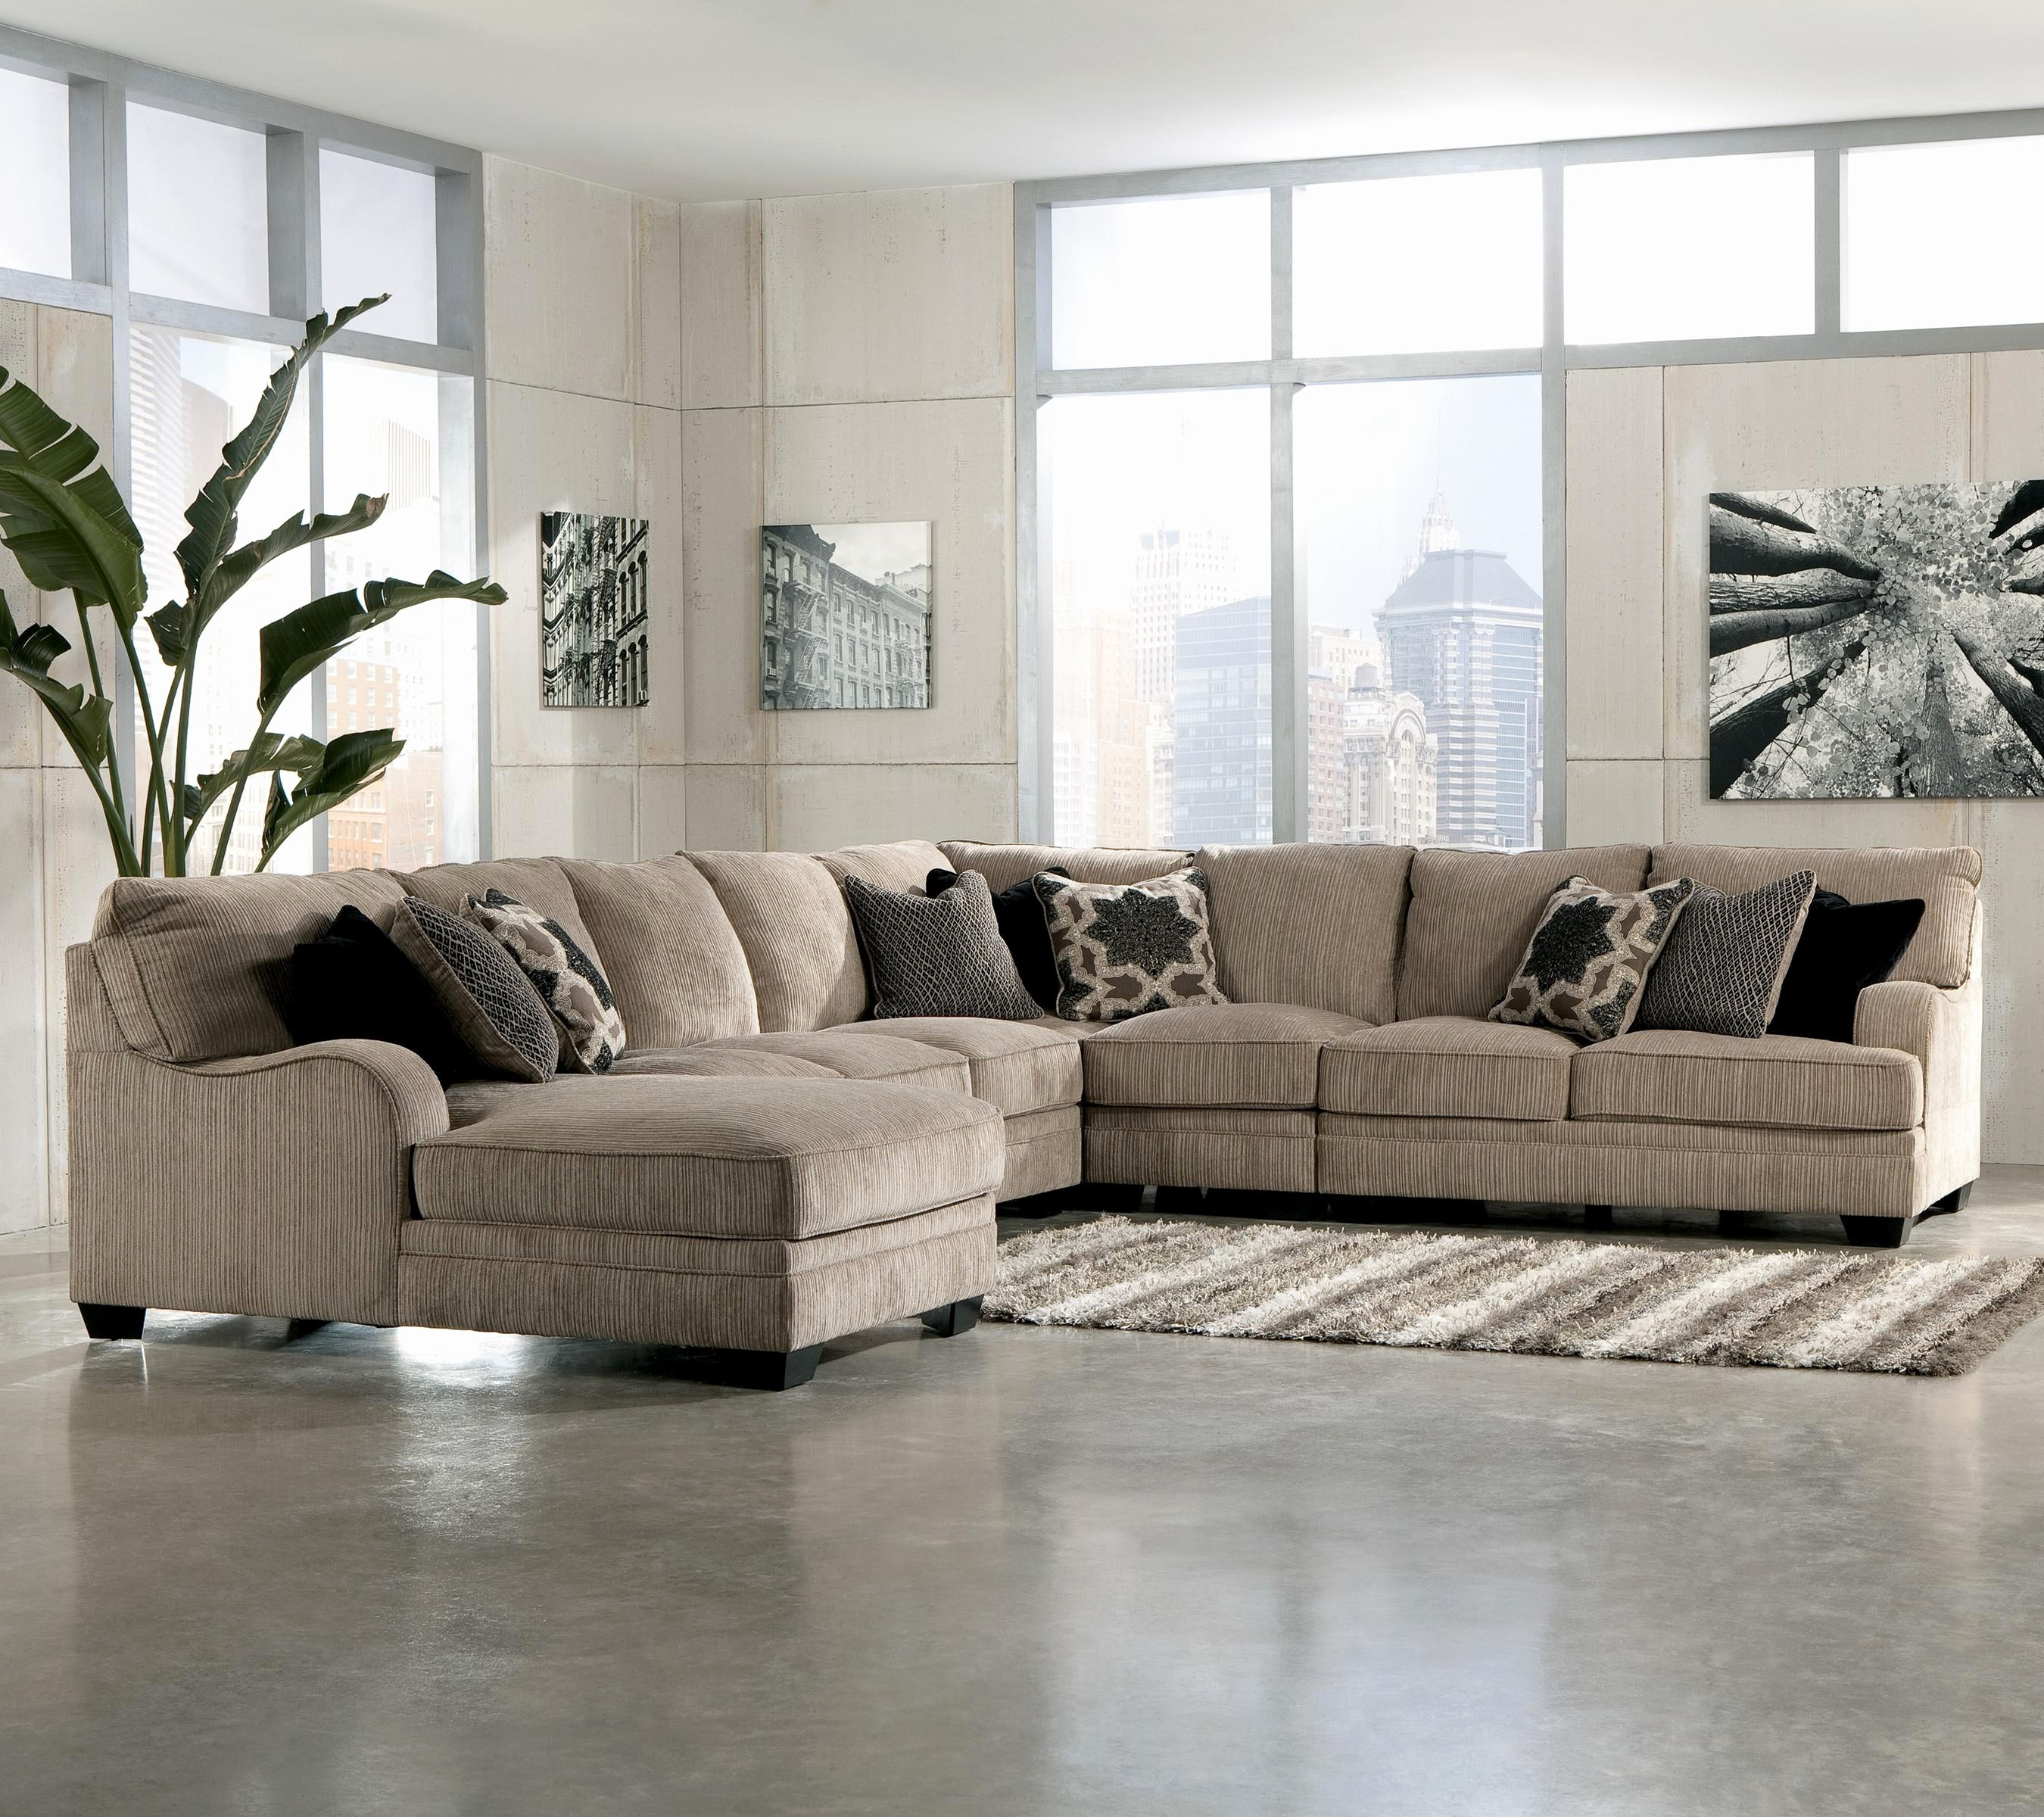 New Cream Sectional sofa Pics katisha platinum 5 piece ...